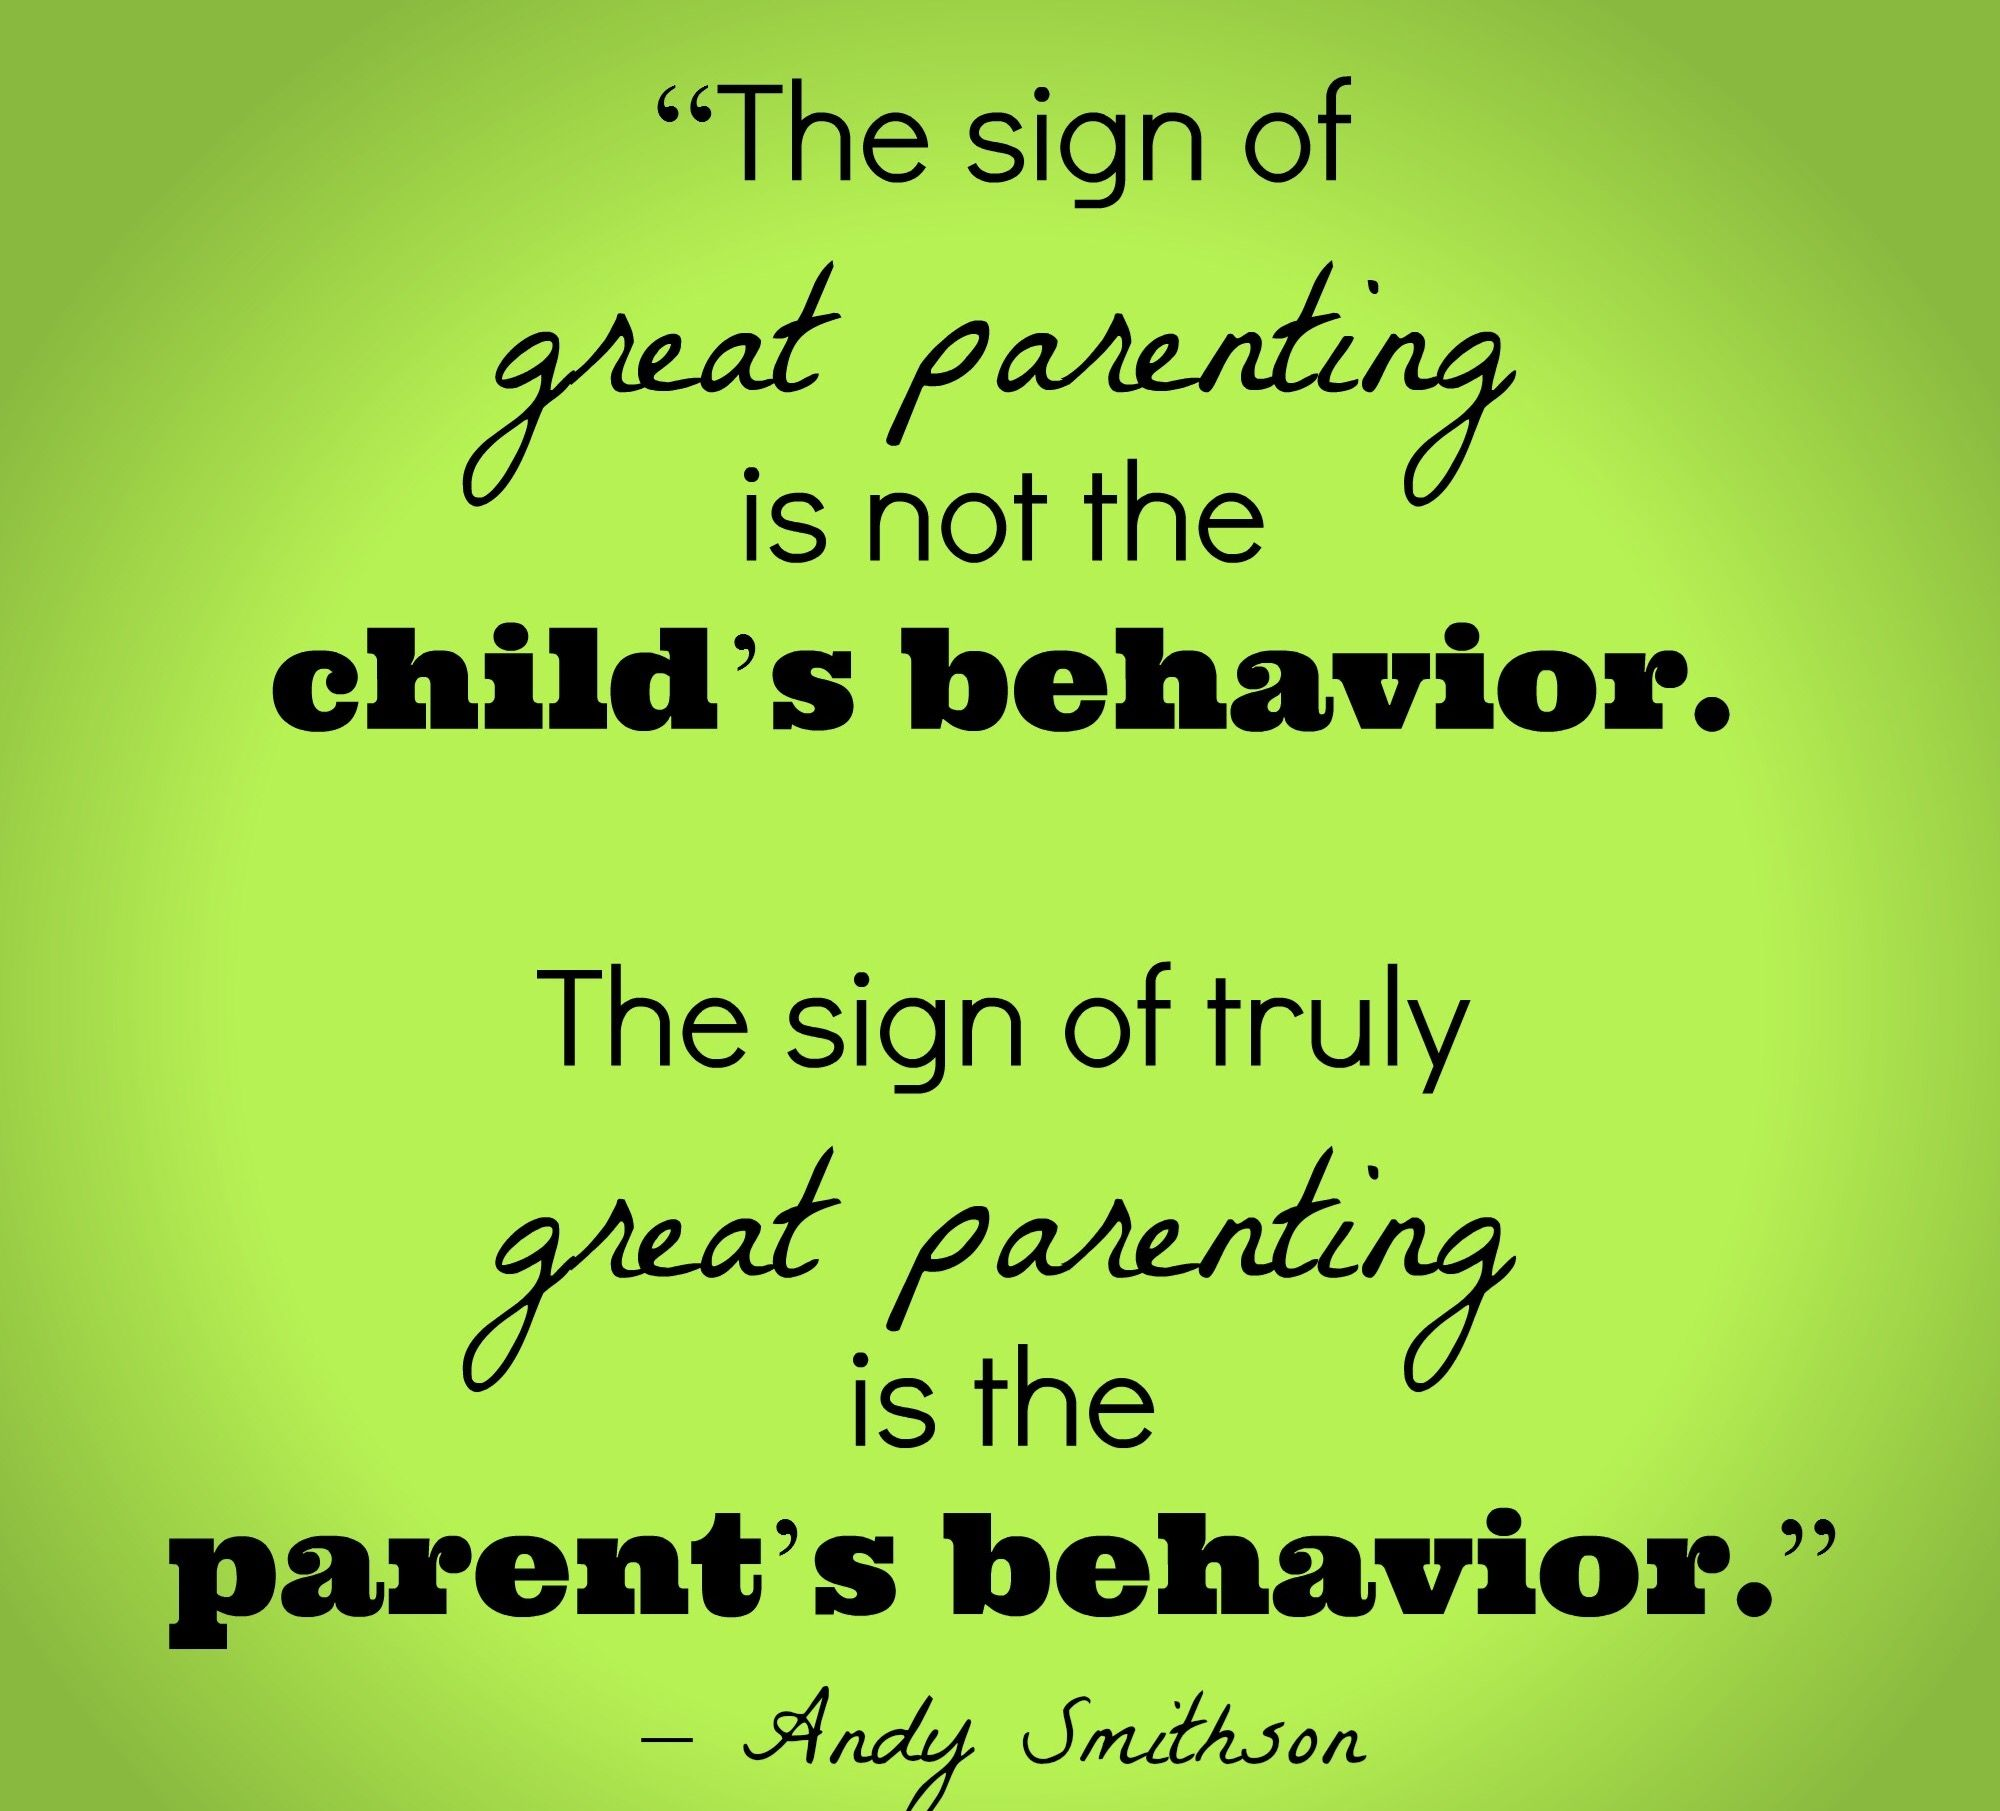 Pin By Binty Mehta On Firefly Behavior Quotes Parenting Quotes Mothers Quotes For Kids